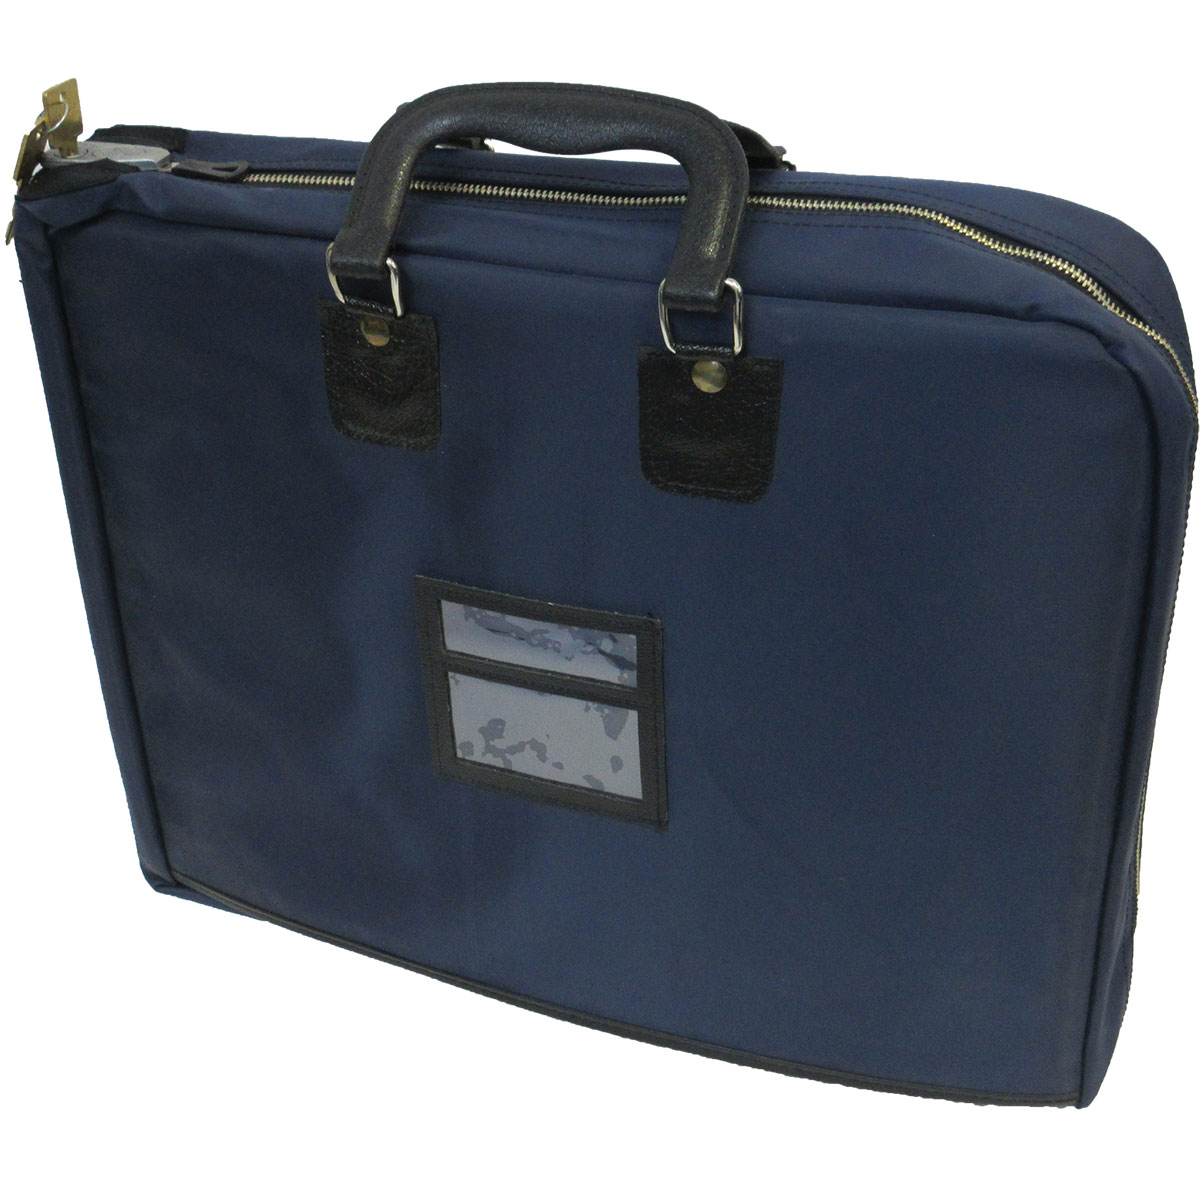 Stock-Locking-Data-Sac-with-Handles